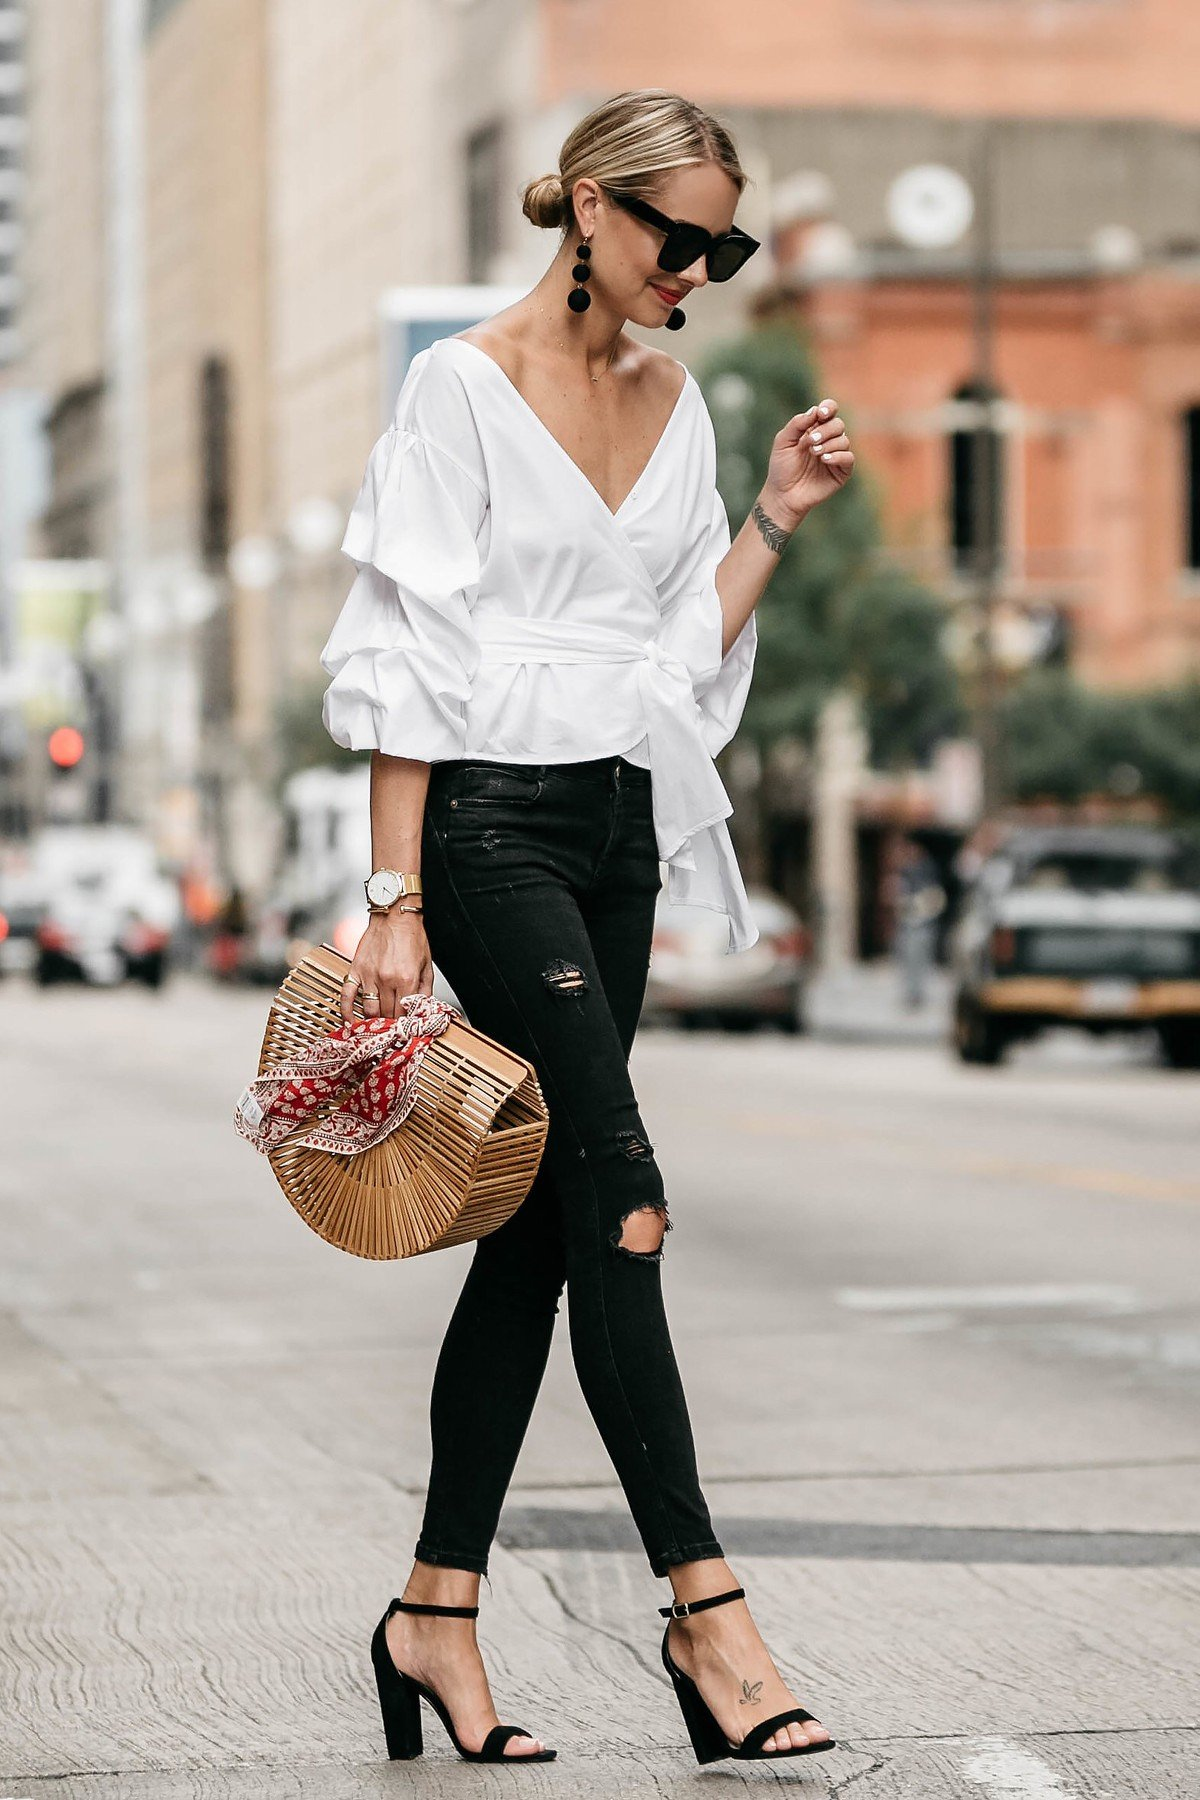 Streetstyle Fashion-Jackson-Club-Monaco-White-Ruffle-Sleeve-Wrap-Top-Cult-Gaia-Ark-Bag-Large-Red-Bandana-Black-Ripped-Skinny-Jeans.jpg